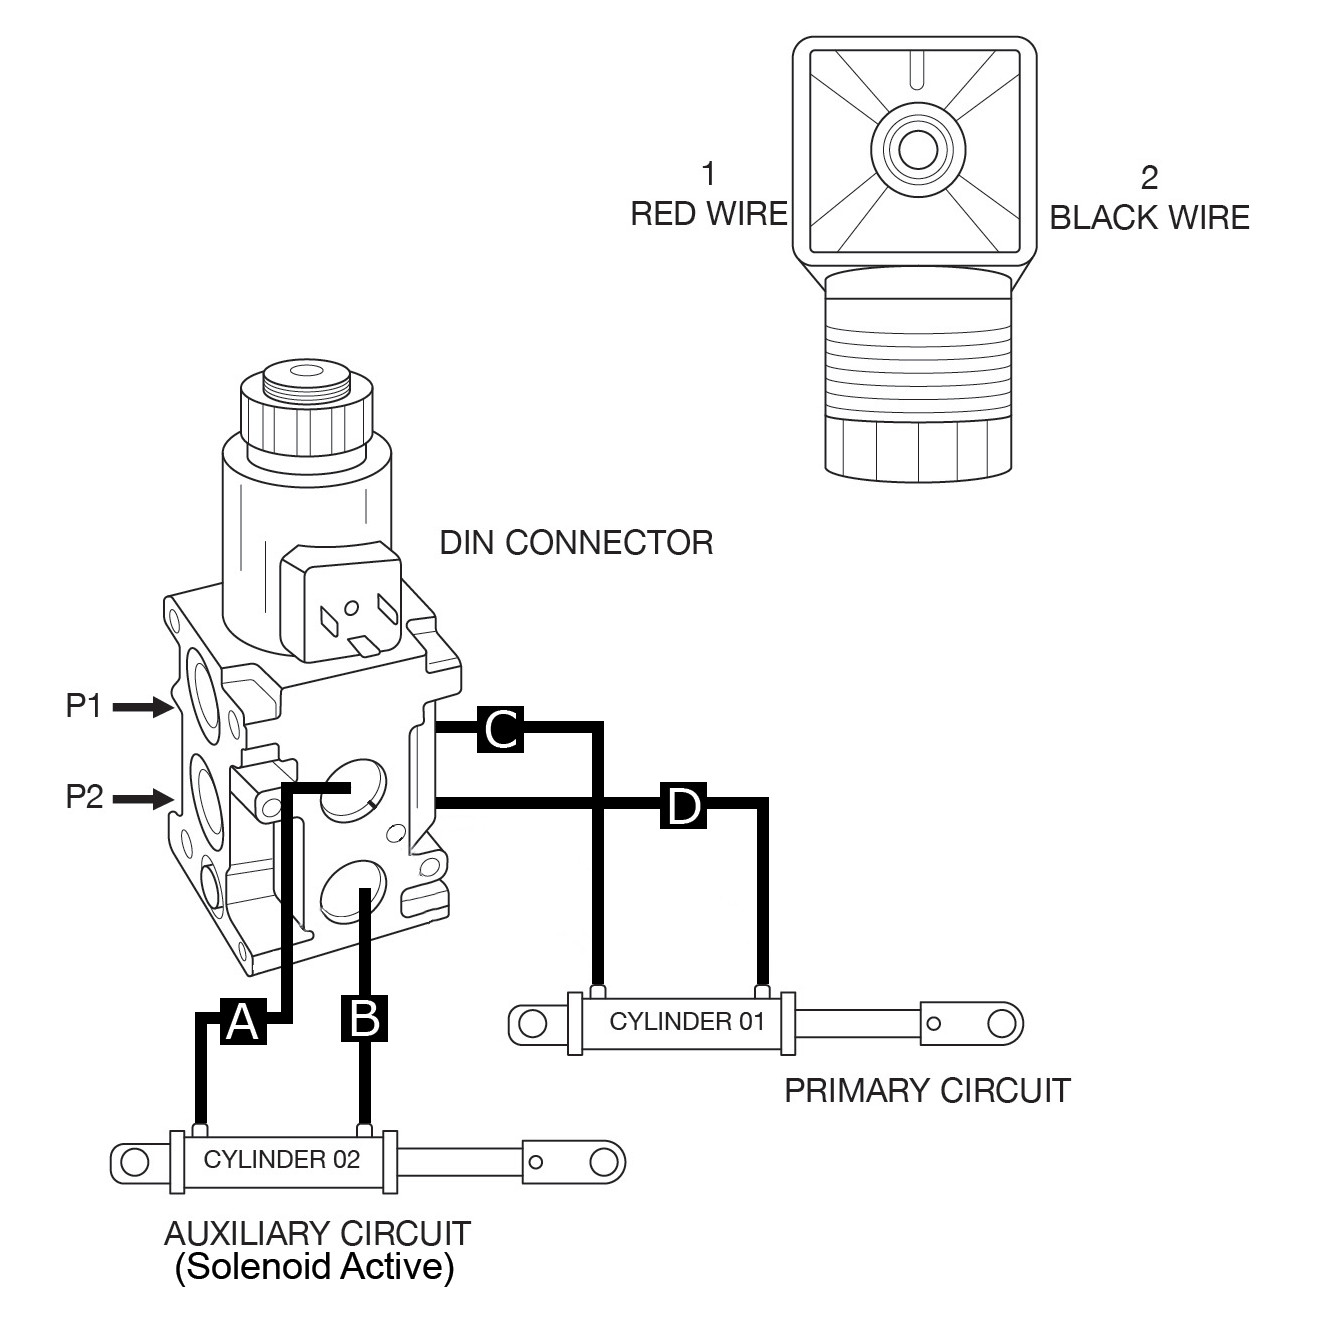 Hydraulic Multiplier Selector Diverter Solenoid Valve w/ Switch & Ag  Coupler Kit | Hydraulic Solenoid Valve Wiring Diagram |  | Summit Hydraulics